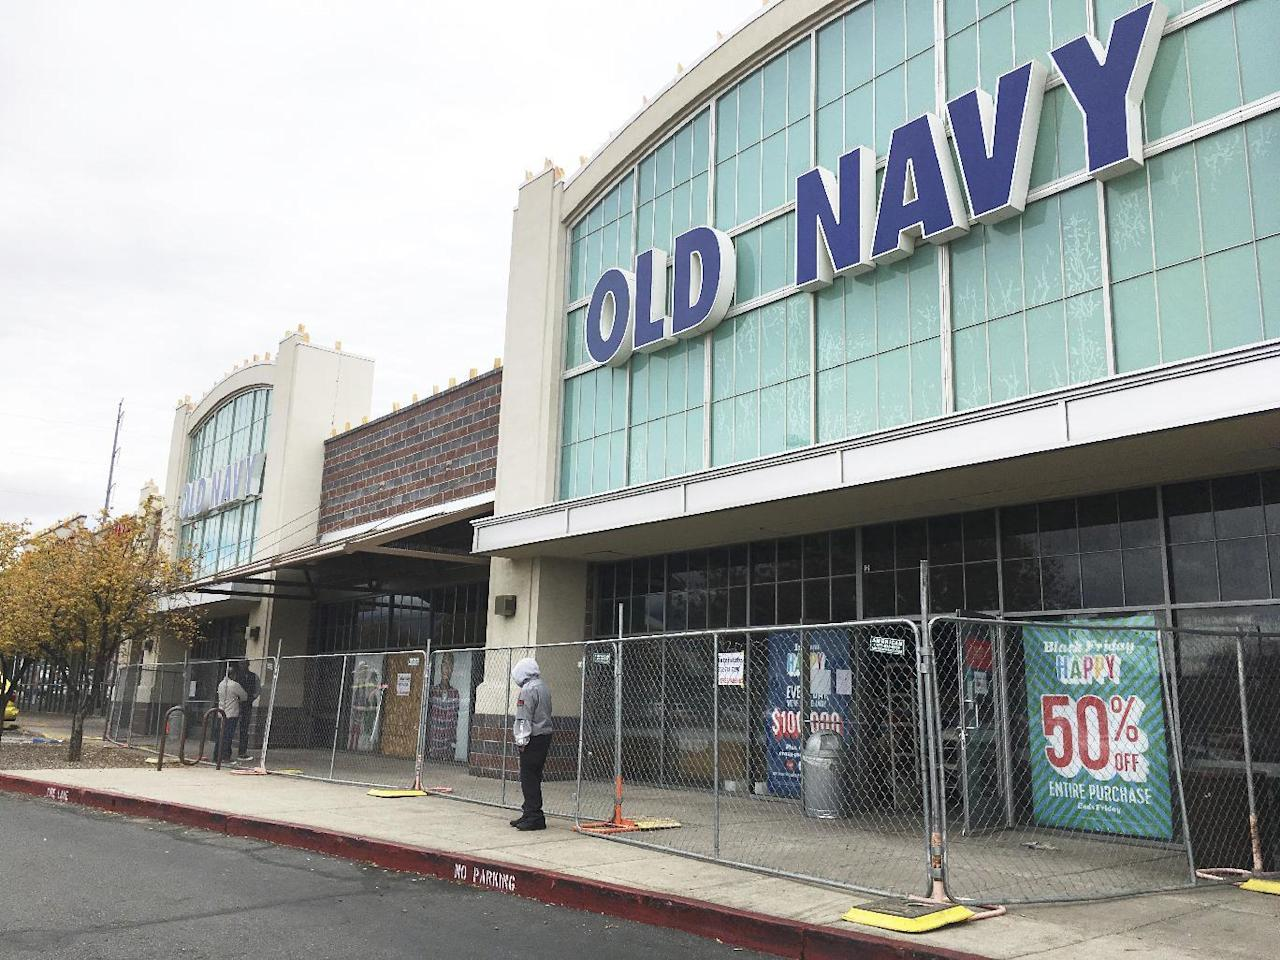 Workers clean up an Old Navy store in Albuquerque, N.M. on Monday, Nov. 28, 2016, two days after authorities say an explosive device damaged the store. Federal authorities charged a man on Monday with using an explosive device to damage the store, where a string of local, overnight fires and instances of vandalism during the busiest shopping weekend of the year also damaged three Starbucks shops, a Barnes & Noble and other establishments in New Mexico's largest city. (AP Photo/Russell Contreras)